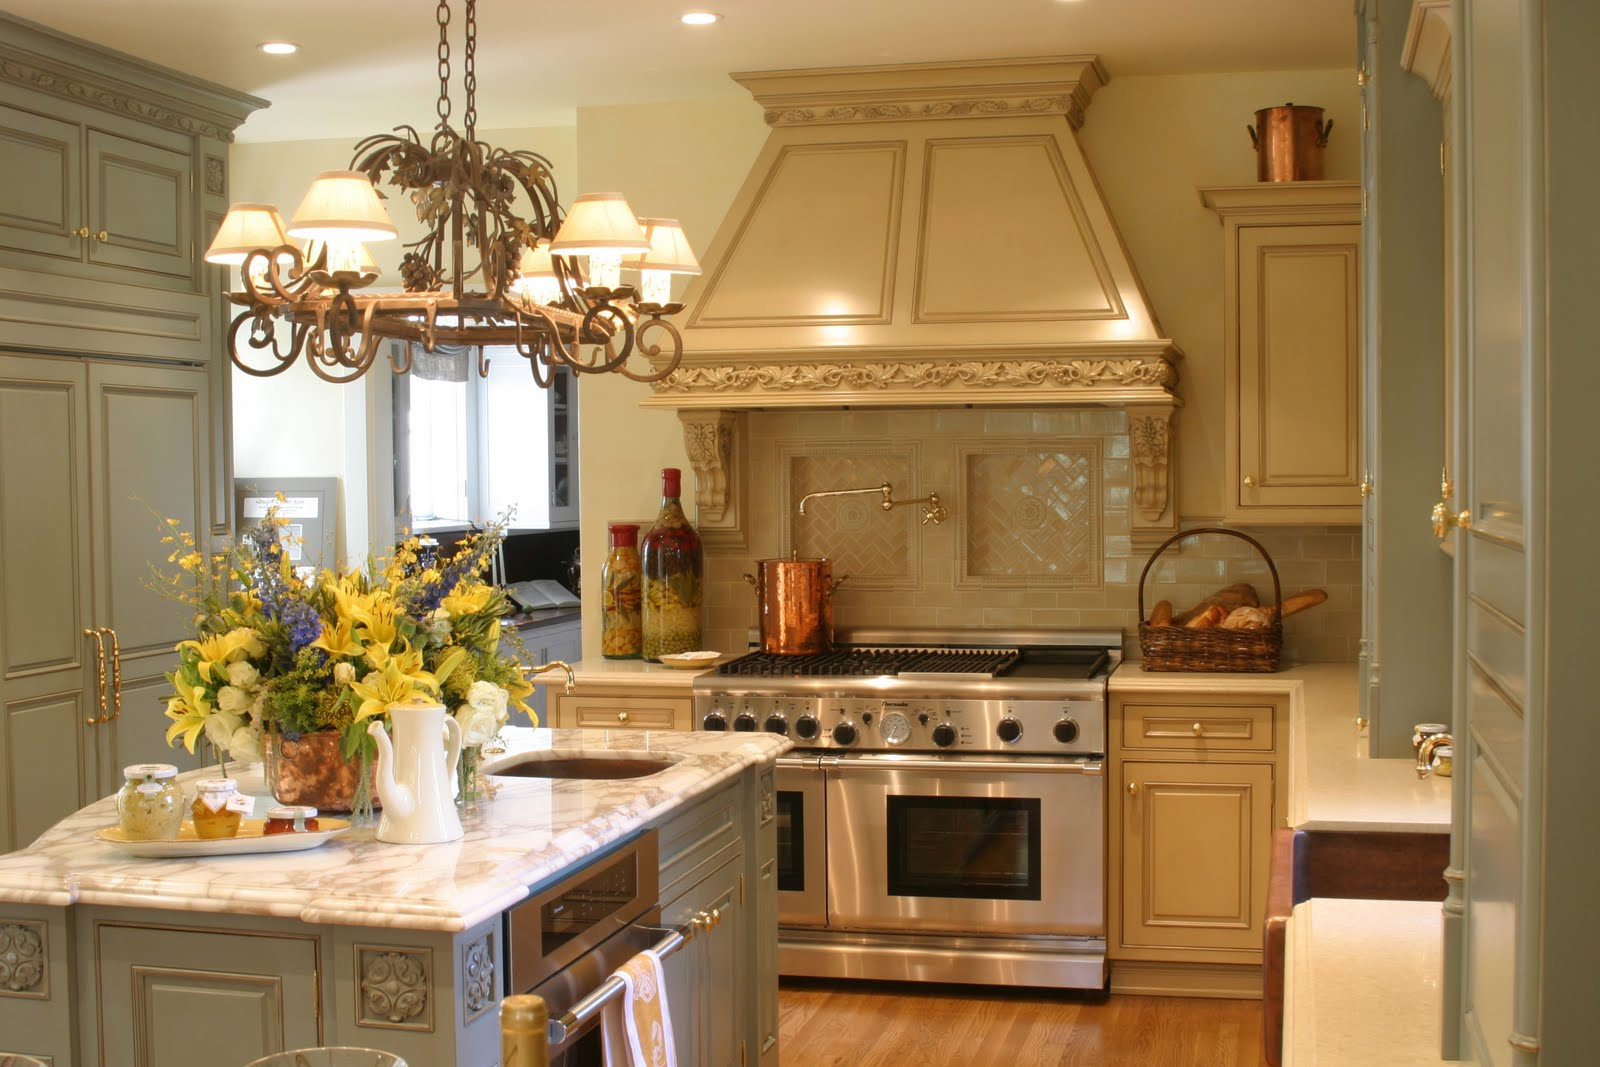 cost of small kitchen remodel how to remodel kitchen cost of small kitchen remodel photo 2